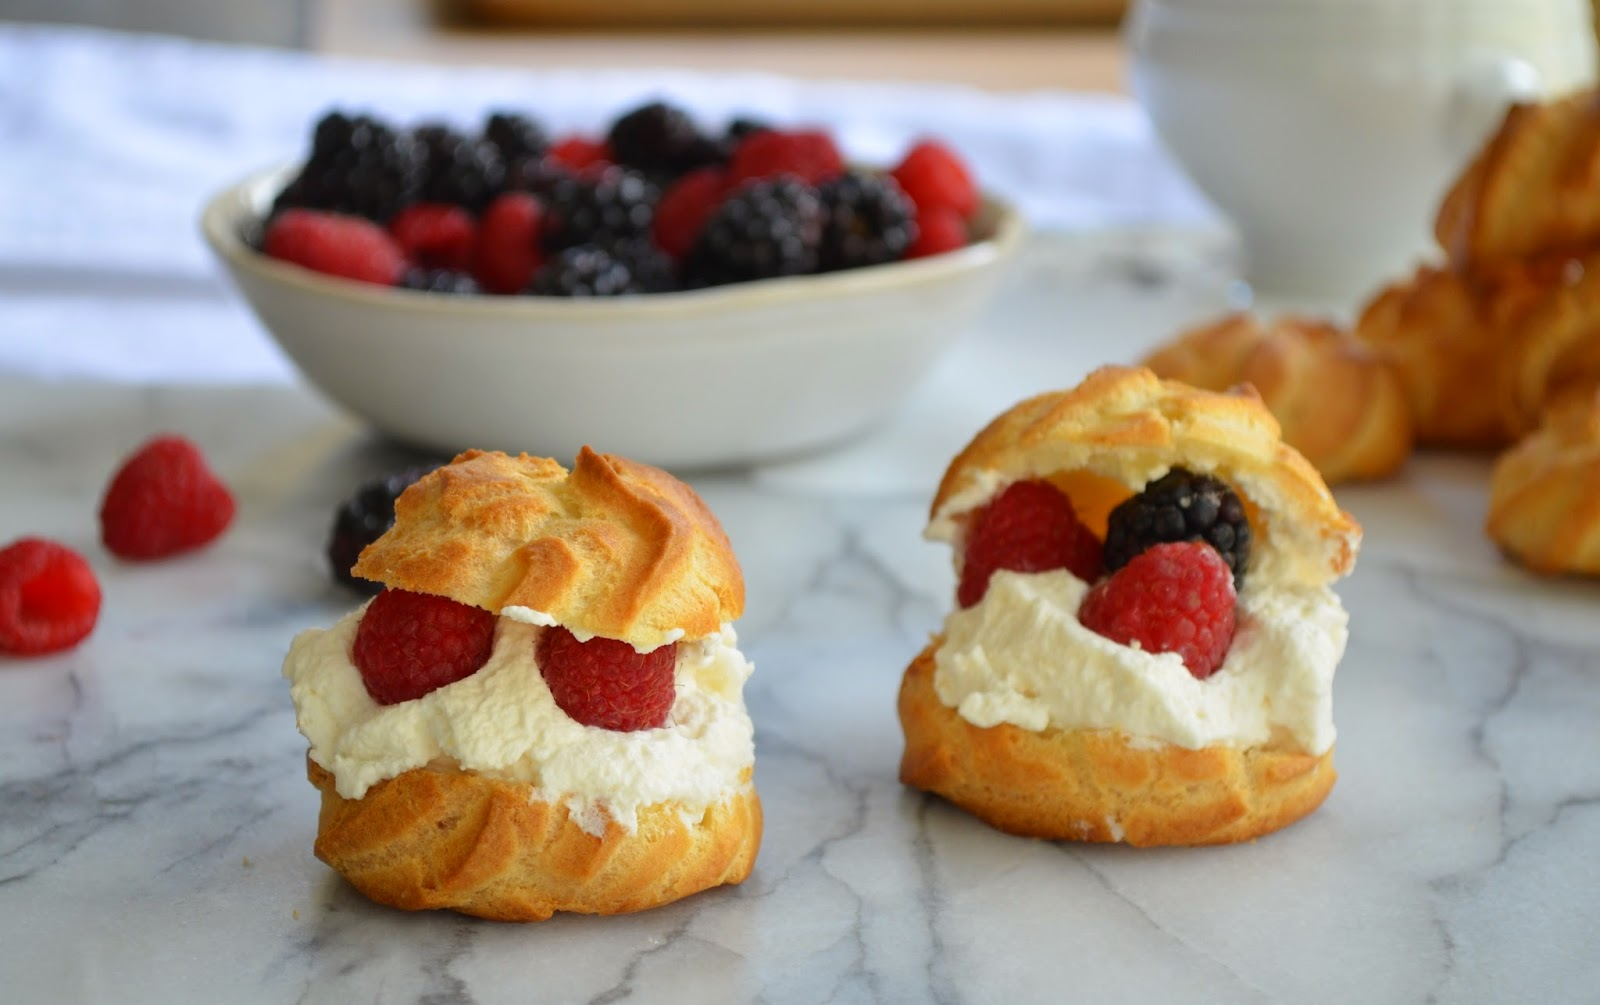 Cream Puffs and Berries - Smell of Rosemary.